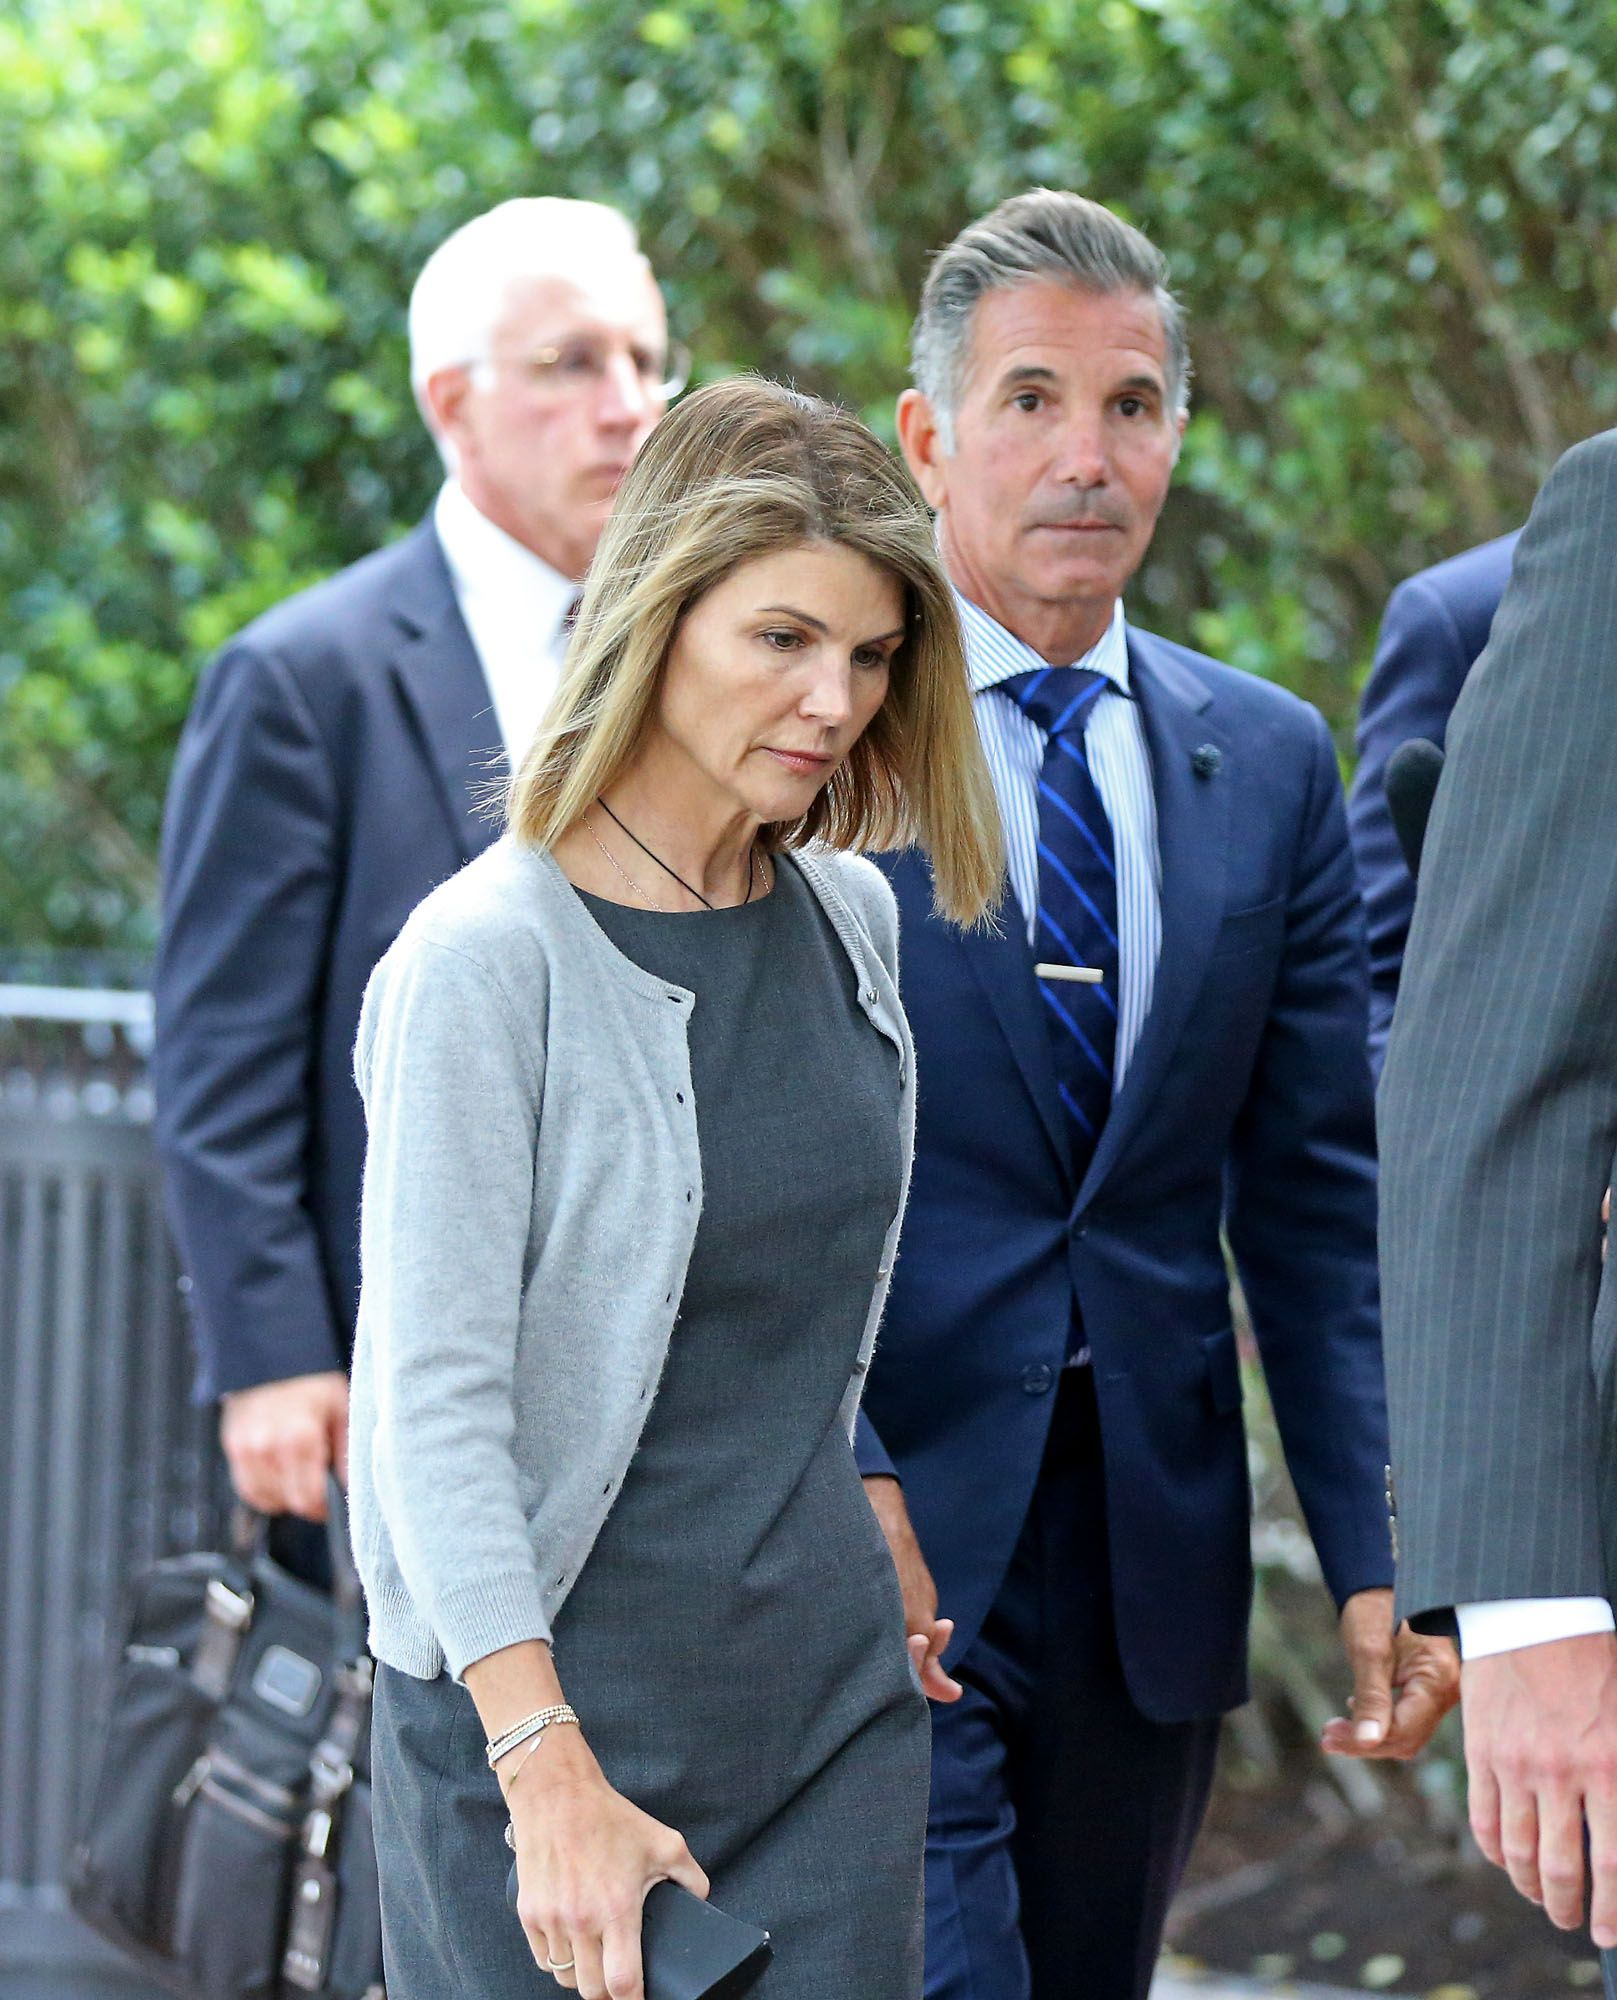 Lori Loughlin and Mossimo Giannulli left Moakley Federal Courthouse after a brief hearing on August 27, 2019 | Photo: Getty Images